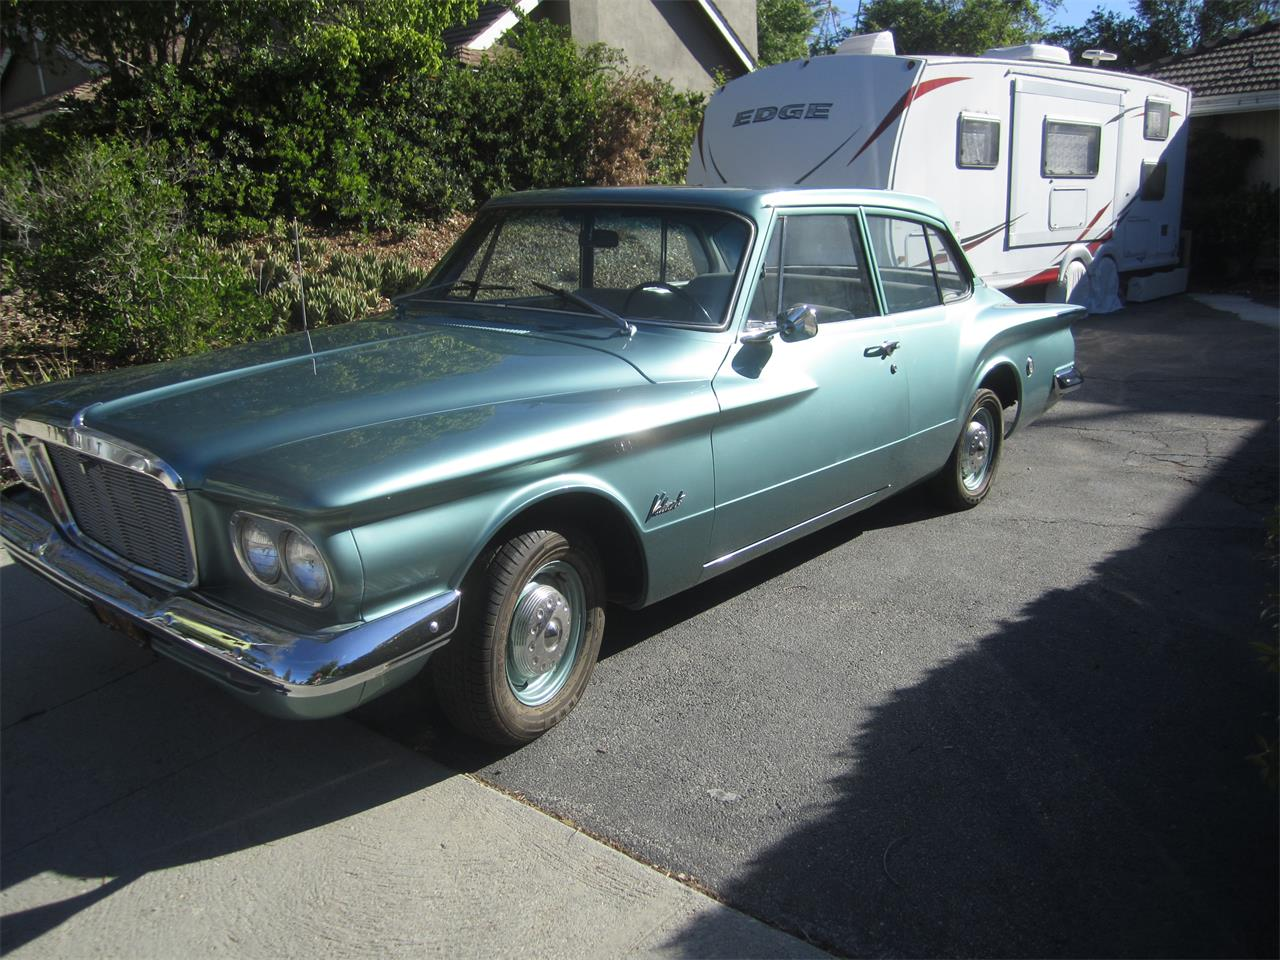 1962 Plymouth Valiant for sale in Northridge, CA